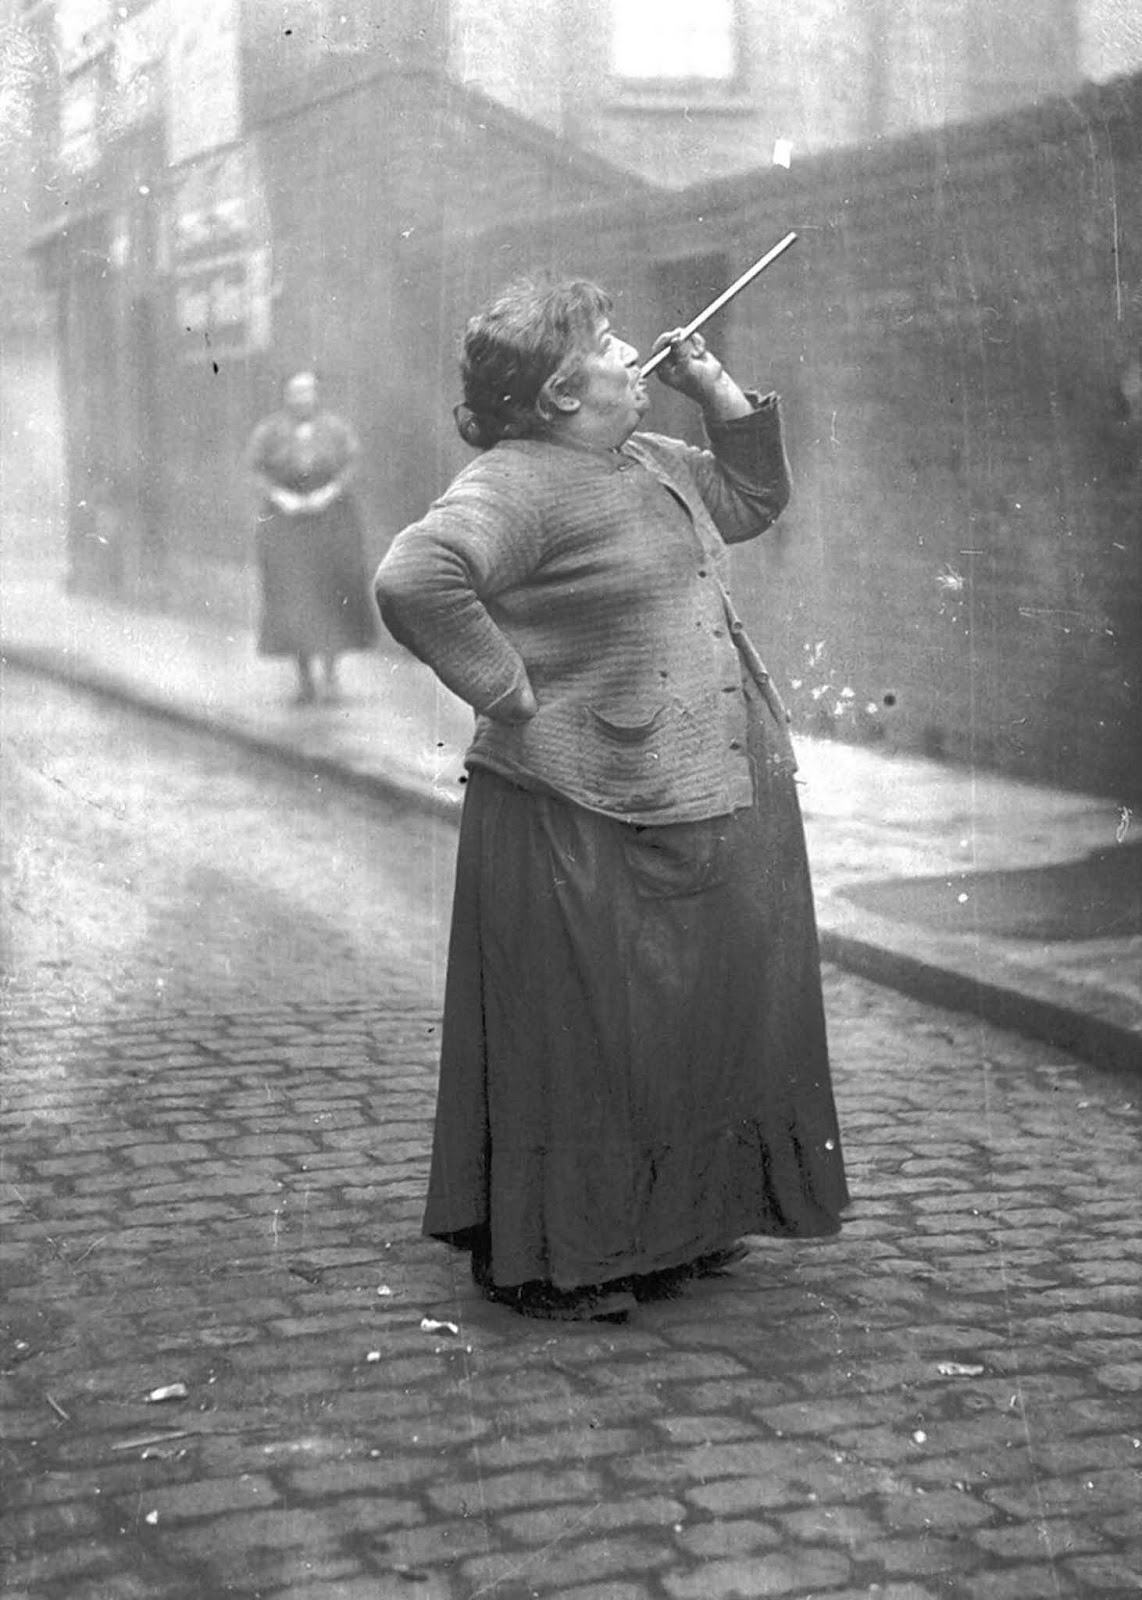 Mary Smith earned six pence a week shooting dried peas at sleeping workers' windows in East London in the 1930s.